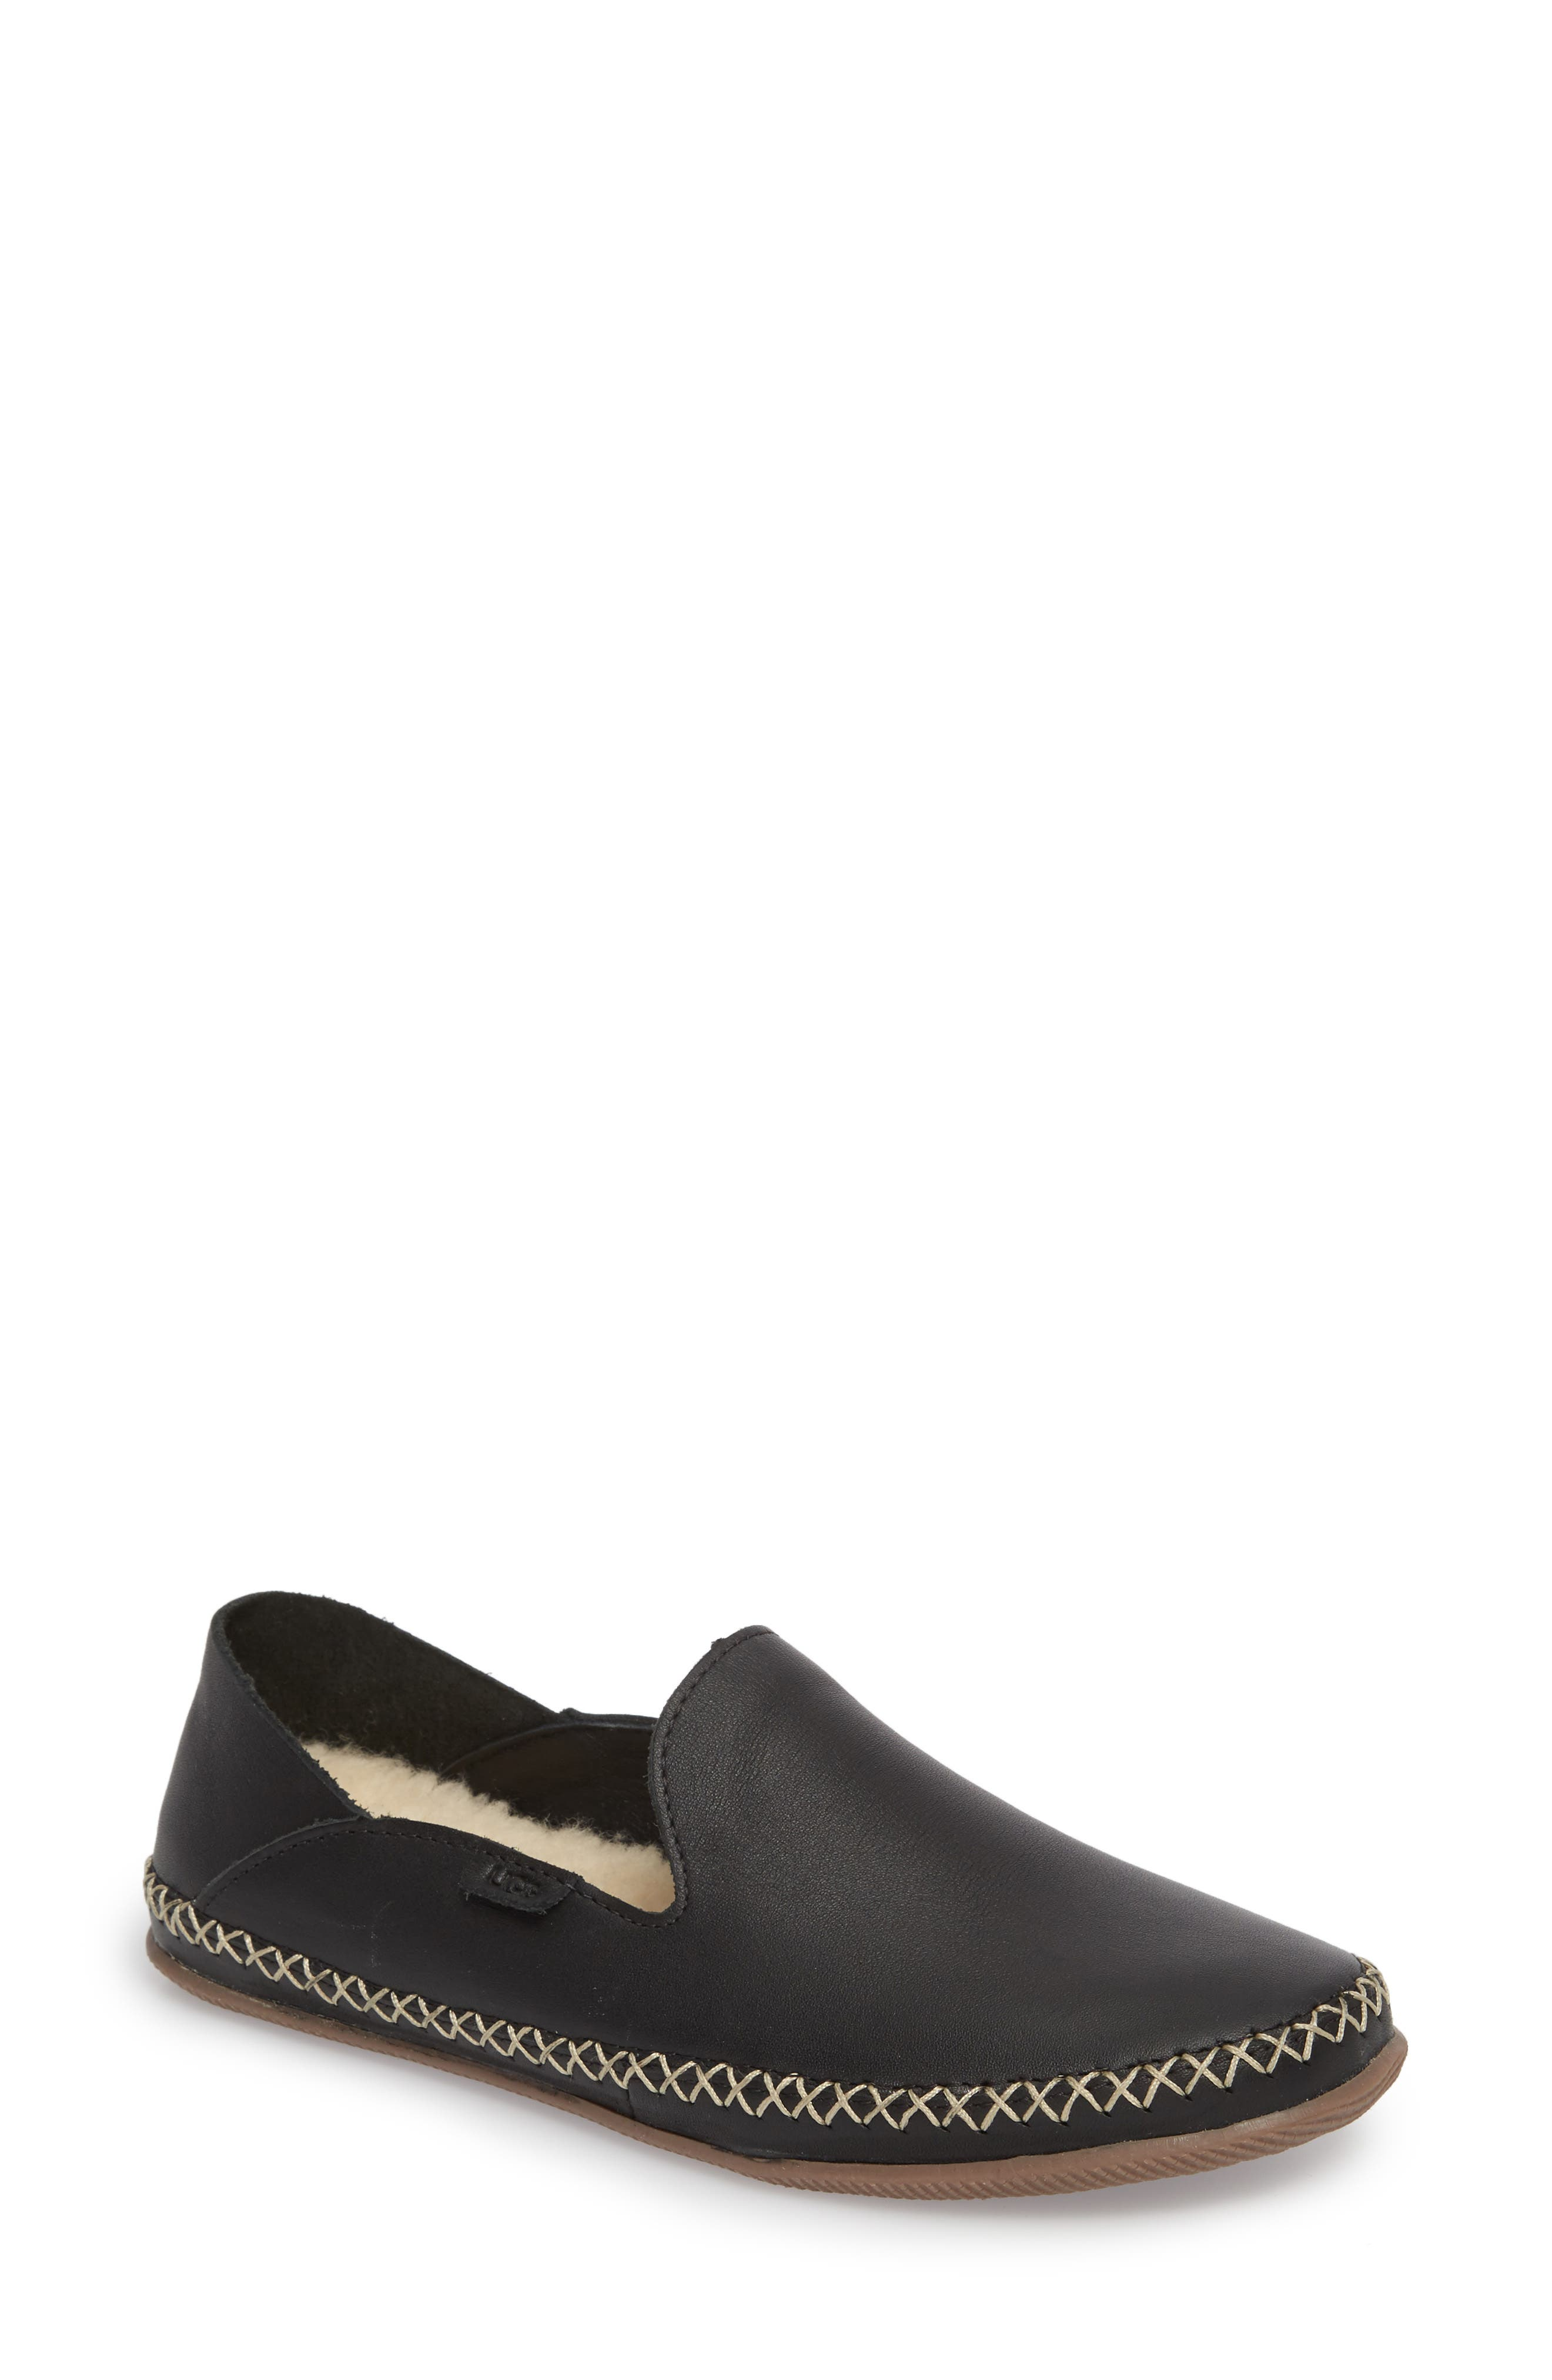 Elodie Flat,                             Main thumbnail 1, color,                             Black Leather